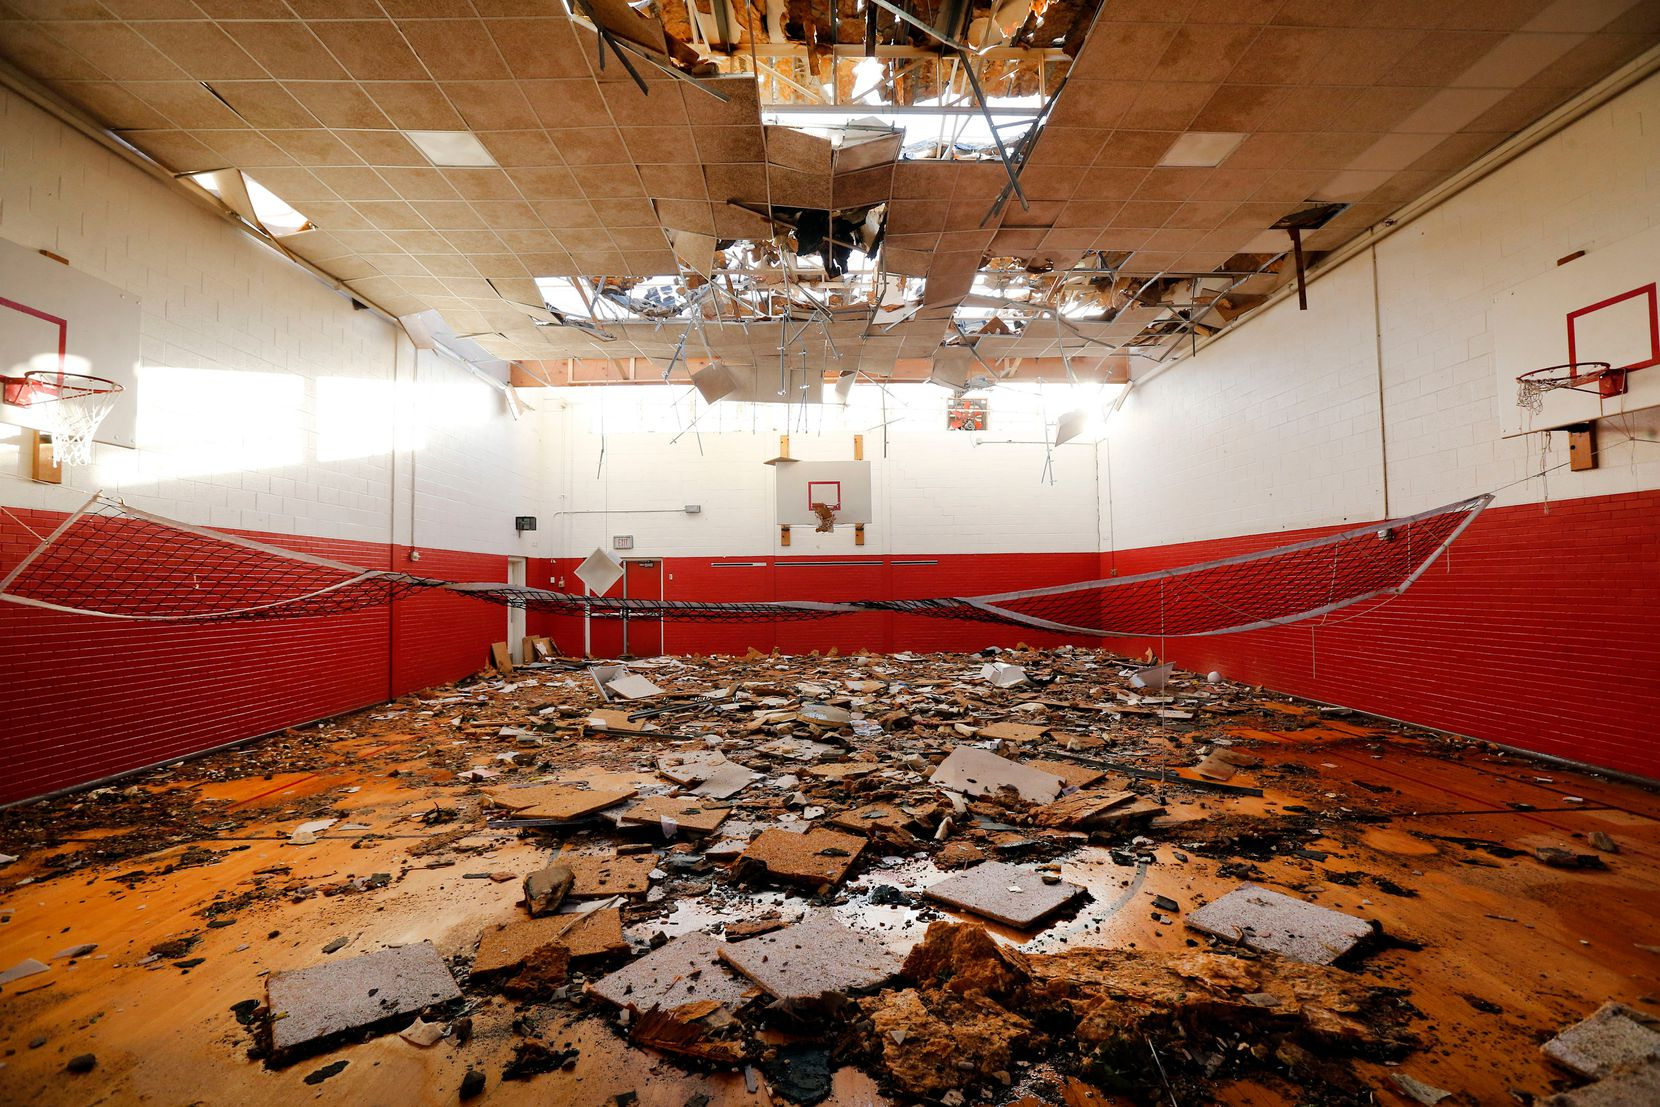 The gymnasium inside what's left of Cary Middle School, which Dallas ISD has said is a complete loss